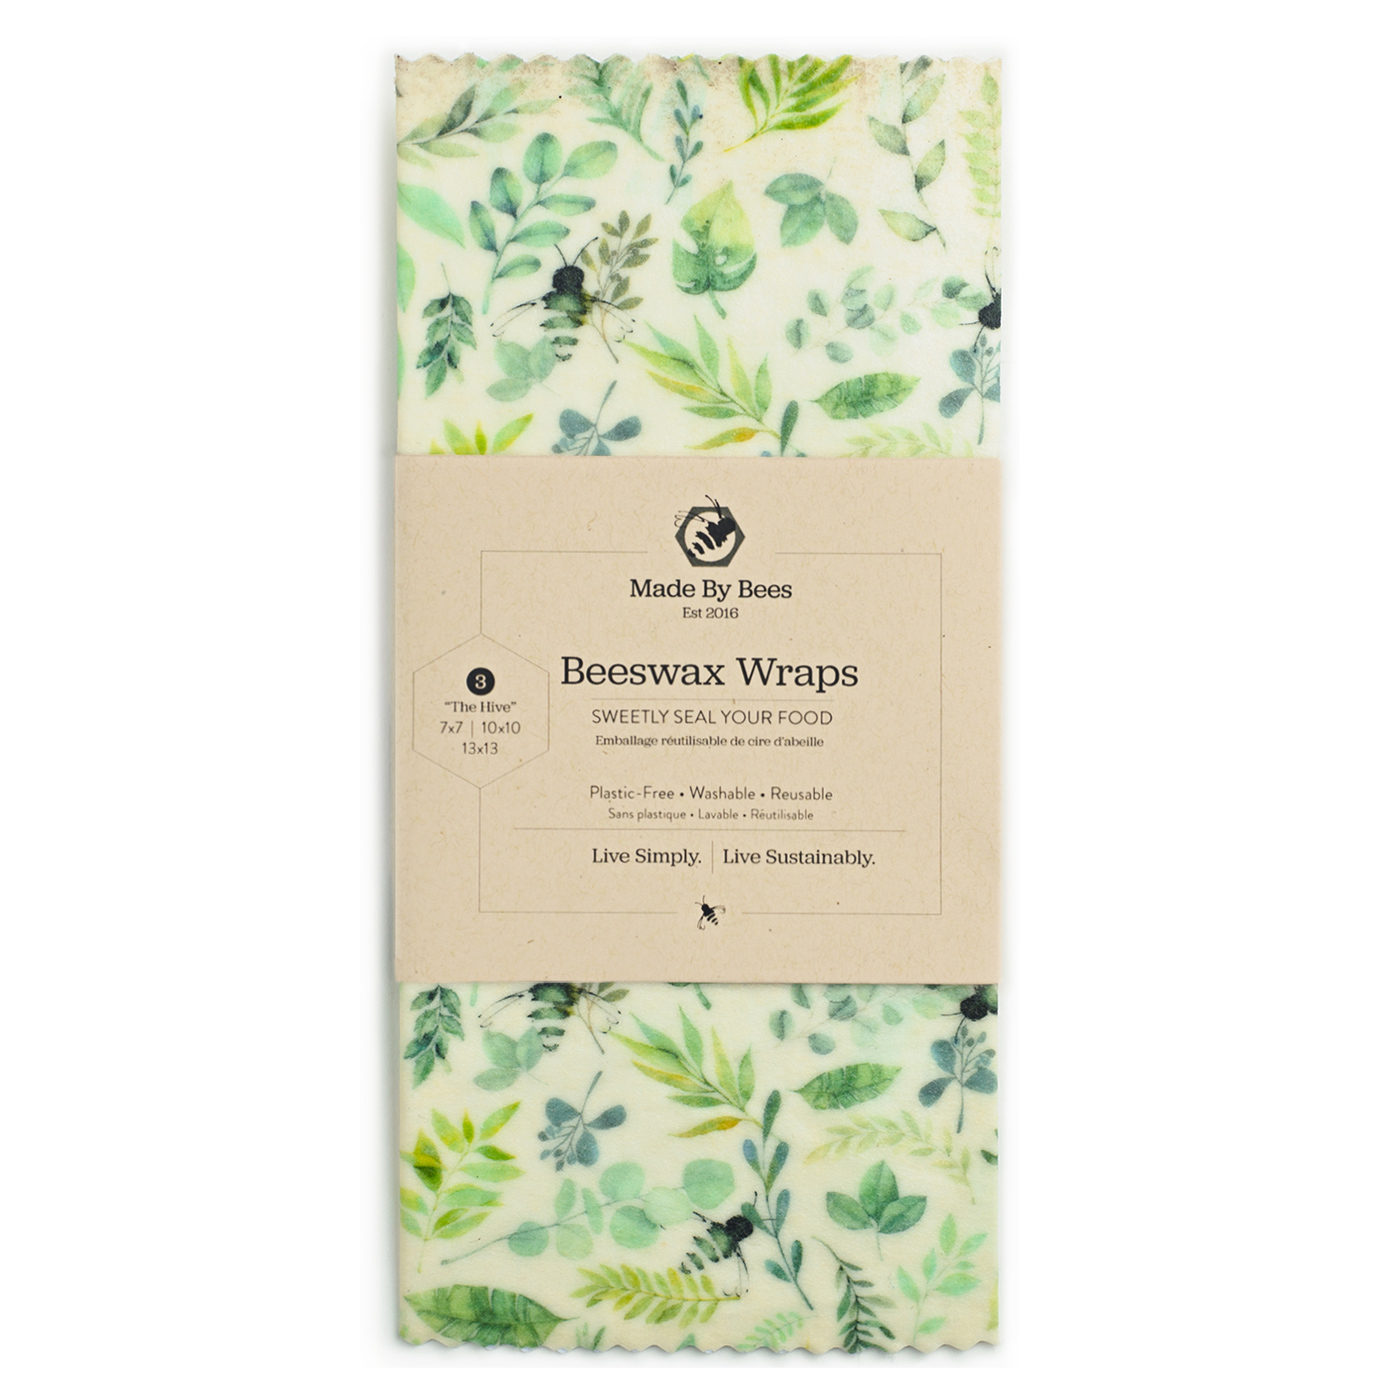 Leafy Greens Beeswax Food Wraps